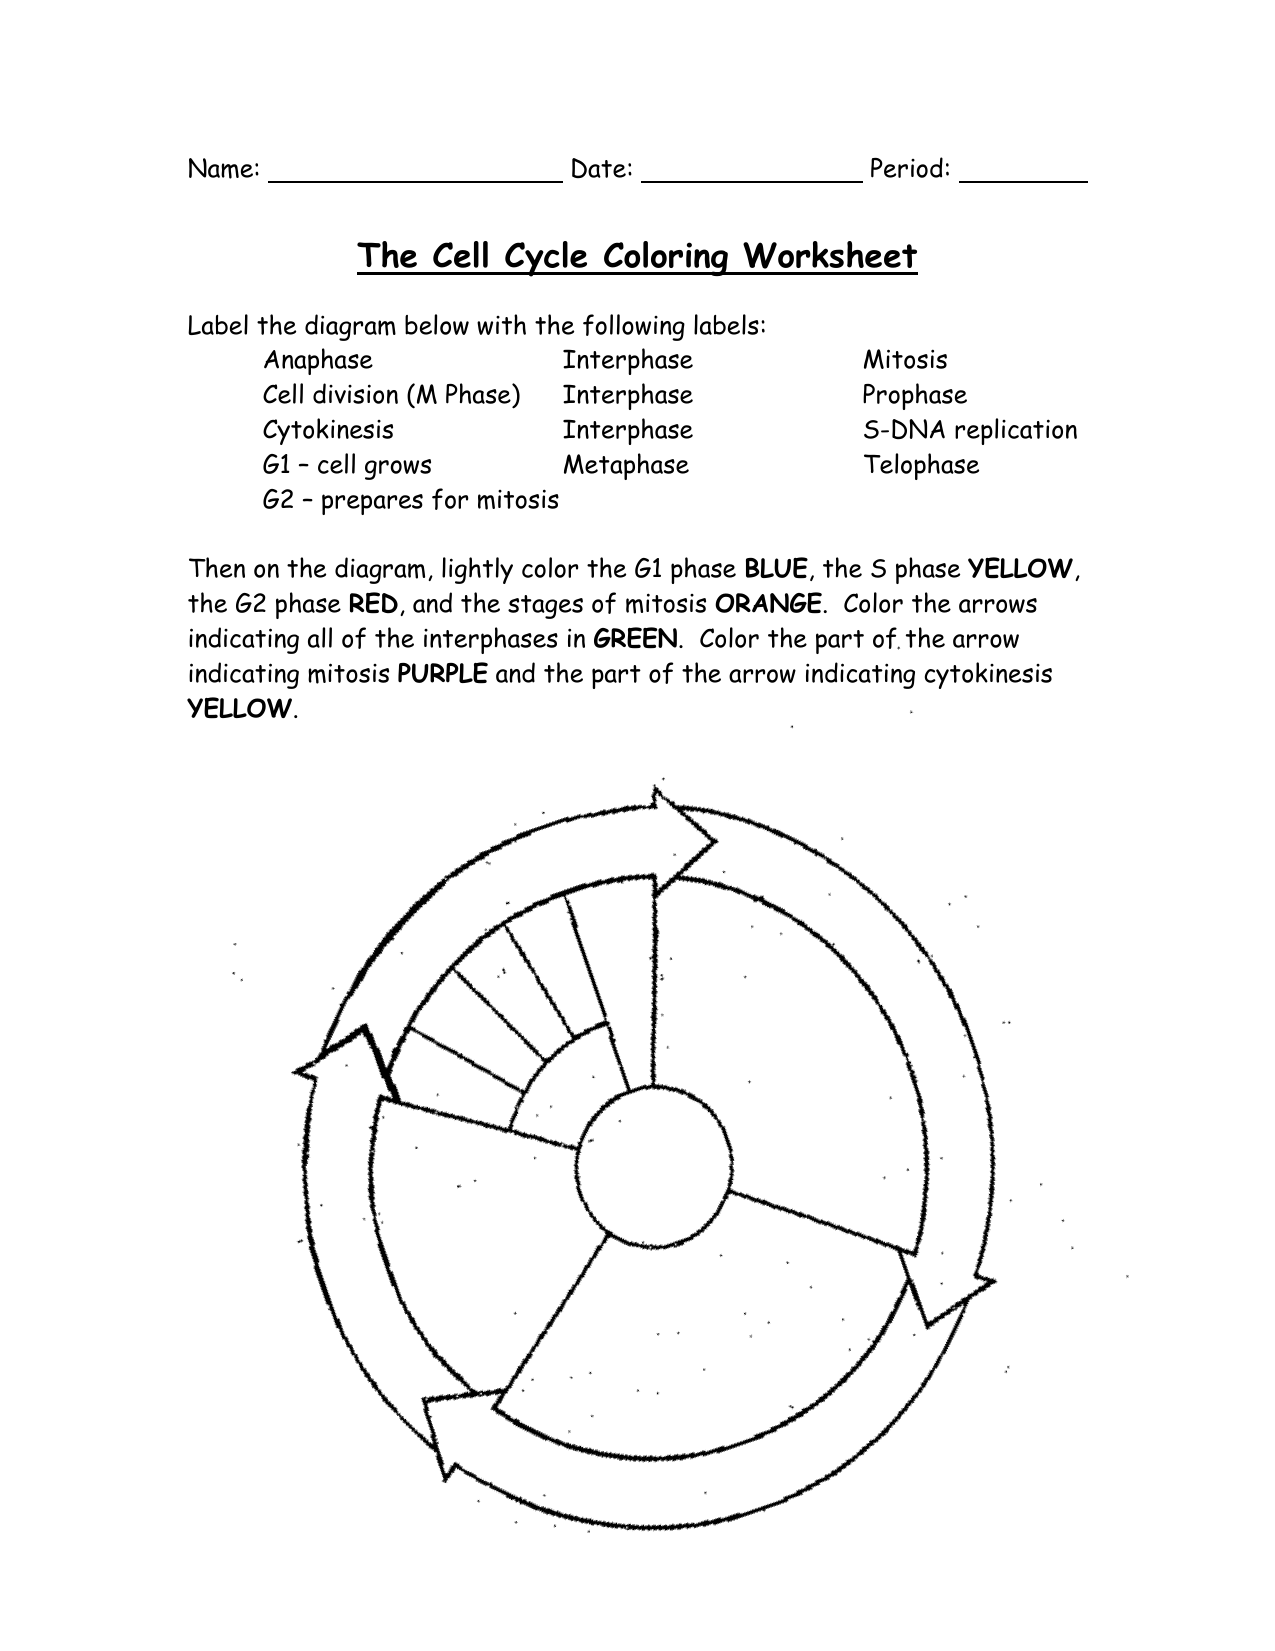 Worksheets The Cell Cycle Worksheet the cell cycle coloring worksheet 008118638 1 f95bf0f32affc5ff63b89d7f656f2006 png